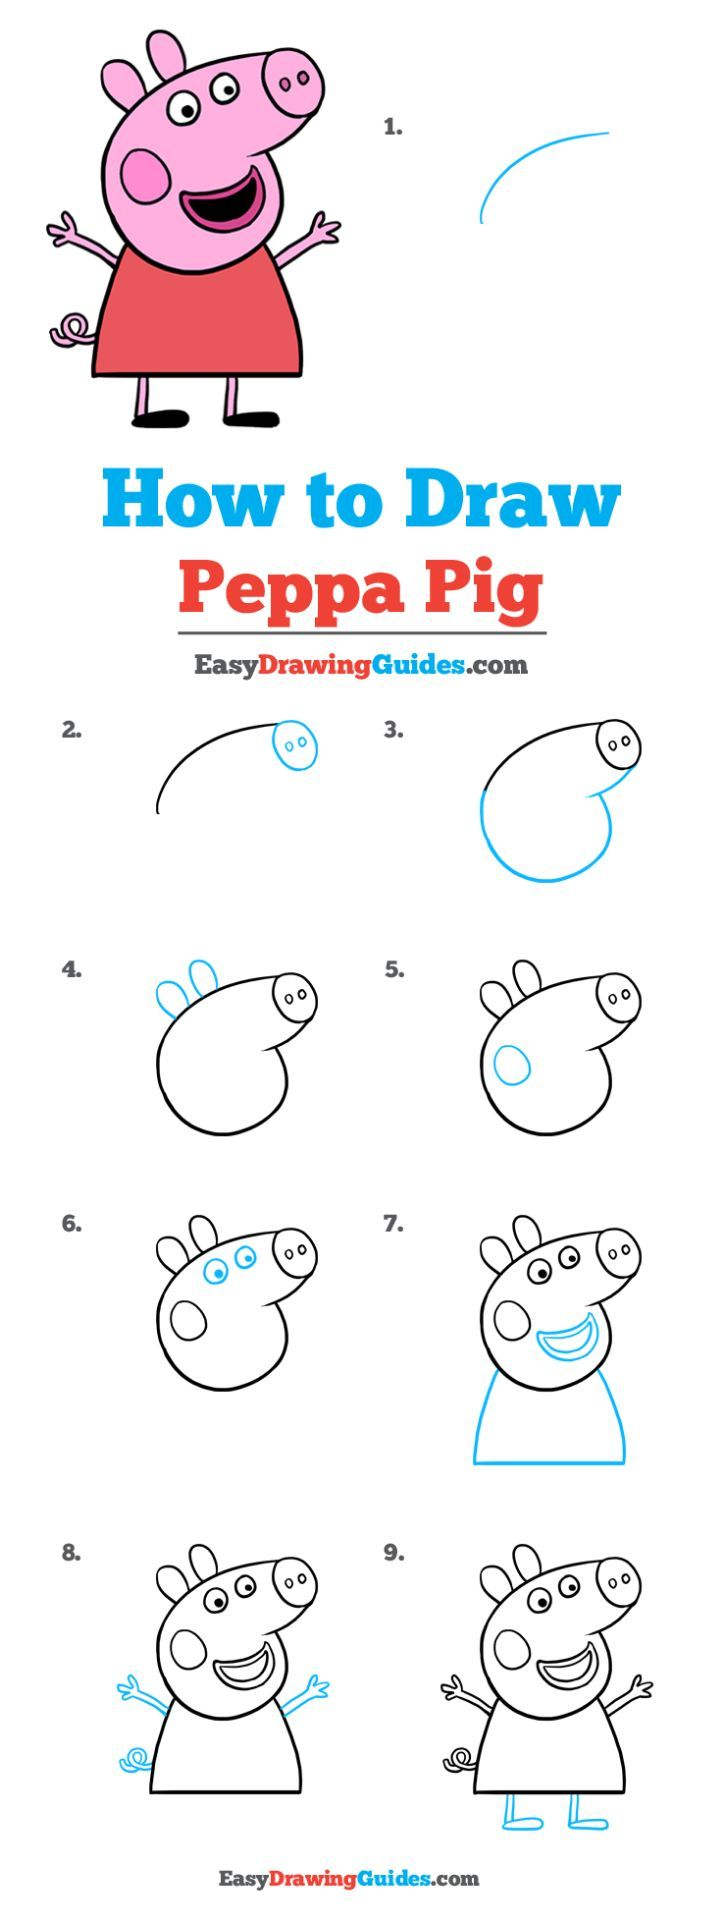 How to Draw Peppa Pig is part of Peppa pig drawing, Pig drawing easy, Easy drawings, Pig drawing, Peppa pig, Drawing tutorials for kids - Learn to draw Peppa Pig  This stepbystep tutorial makes it easy  Kids and beginners alike can now draw a great looking Peppa Pig